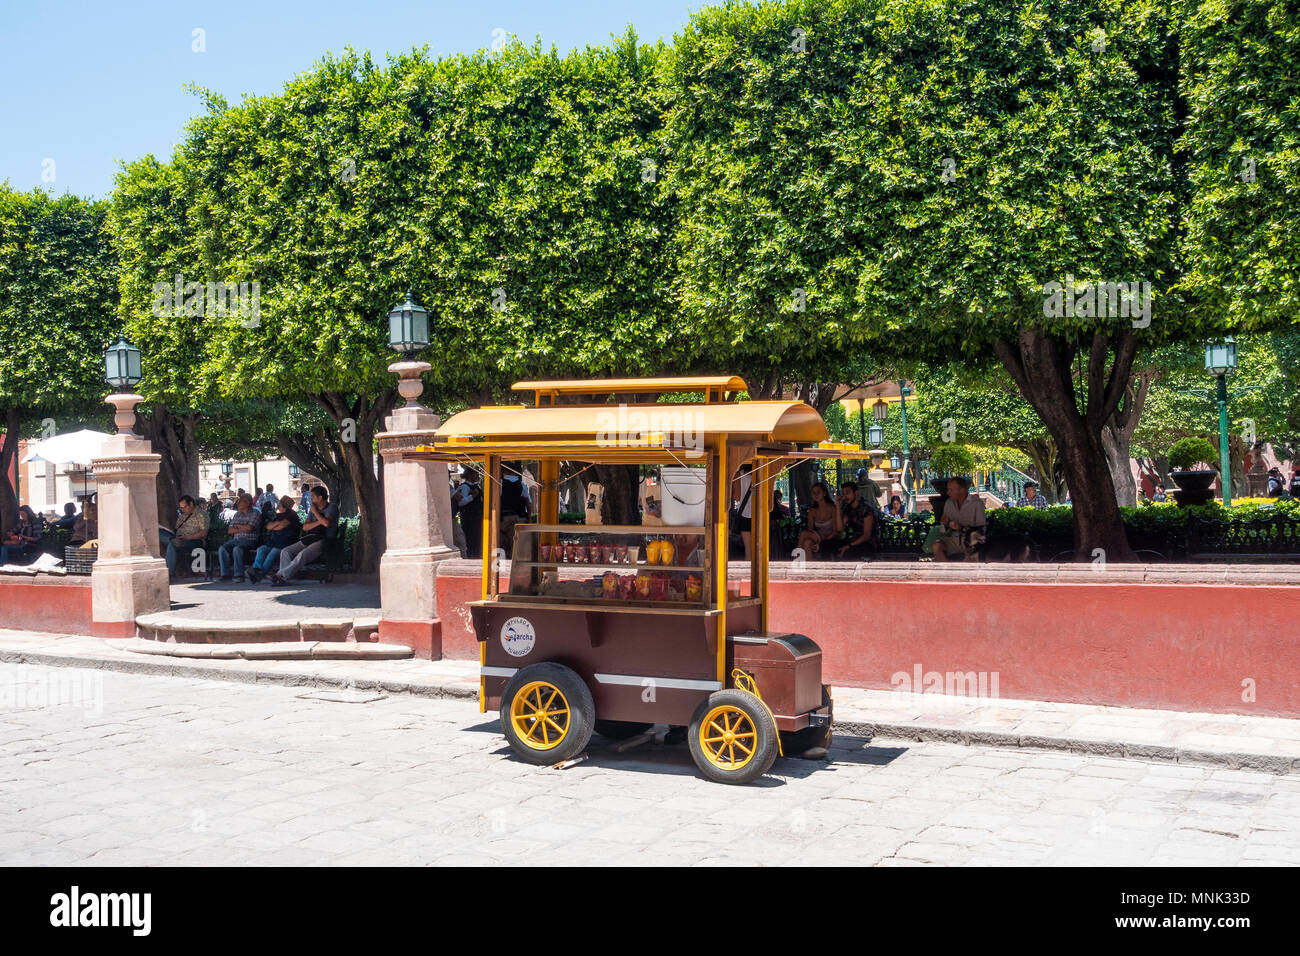 A fresh fruit stand at El Jardin in the center of San Miguel did Allende, Mexico - Stock Image